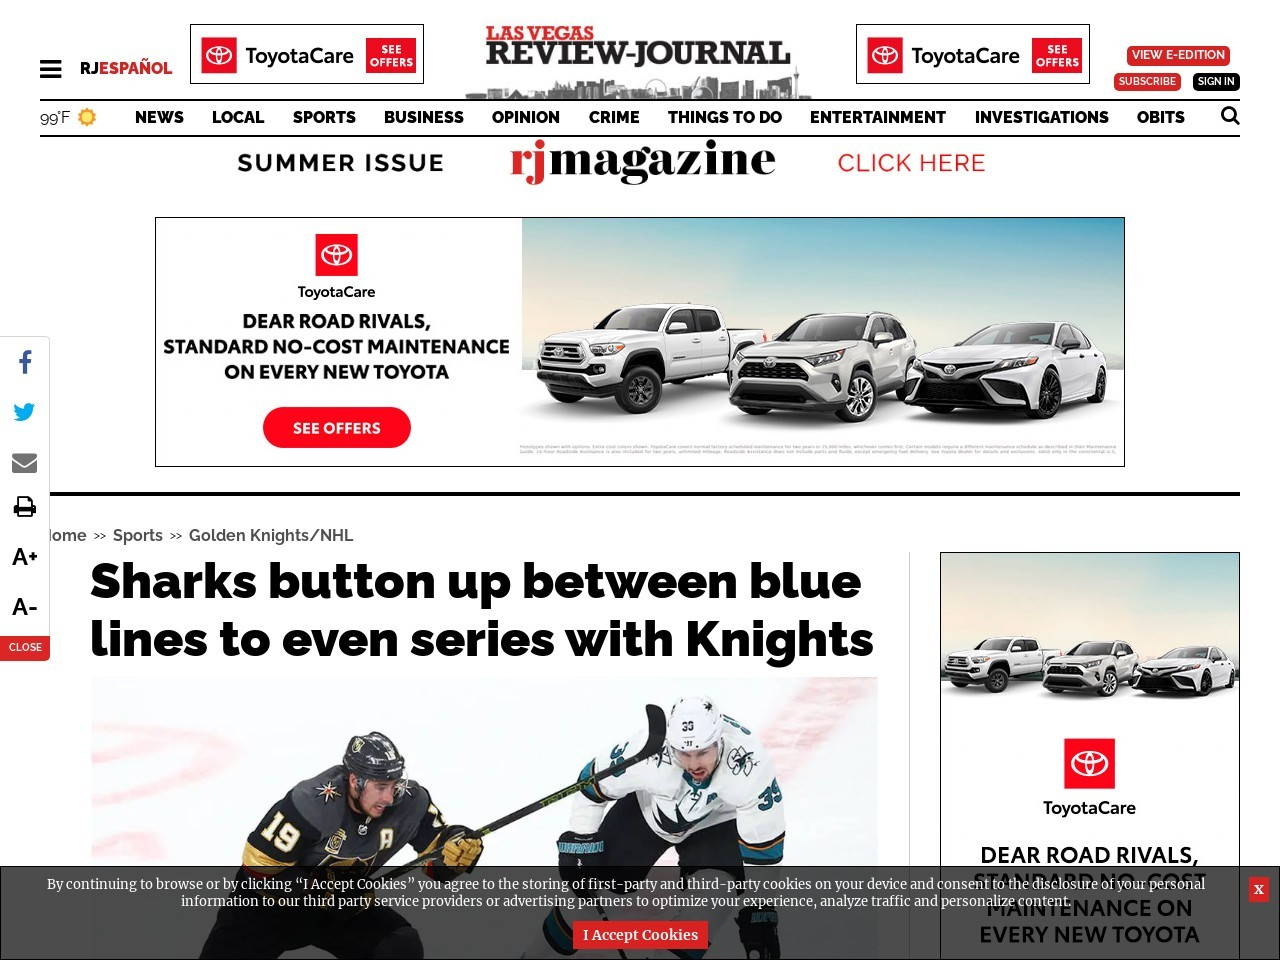 Sharks button up between blue lines to even series with Knights